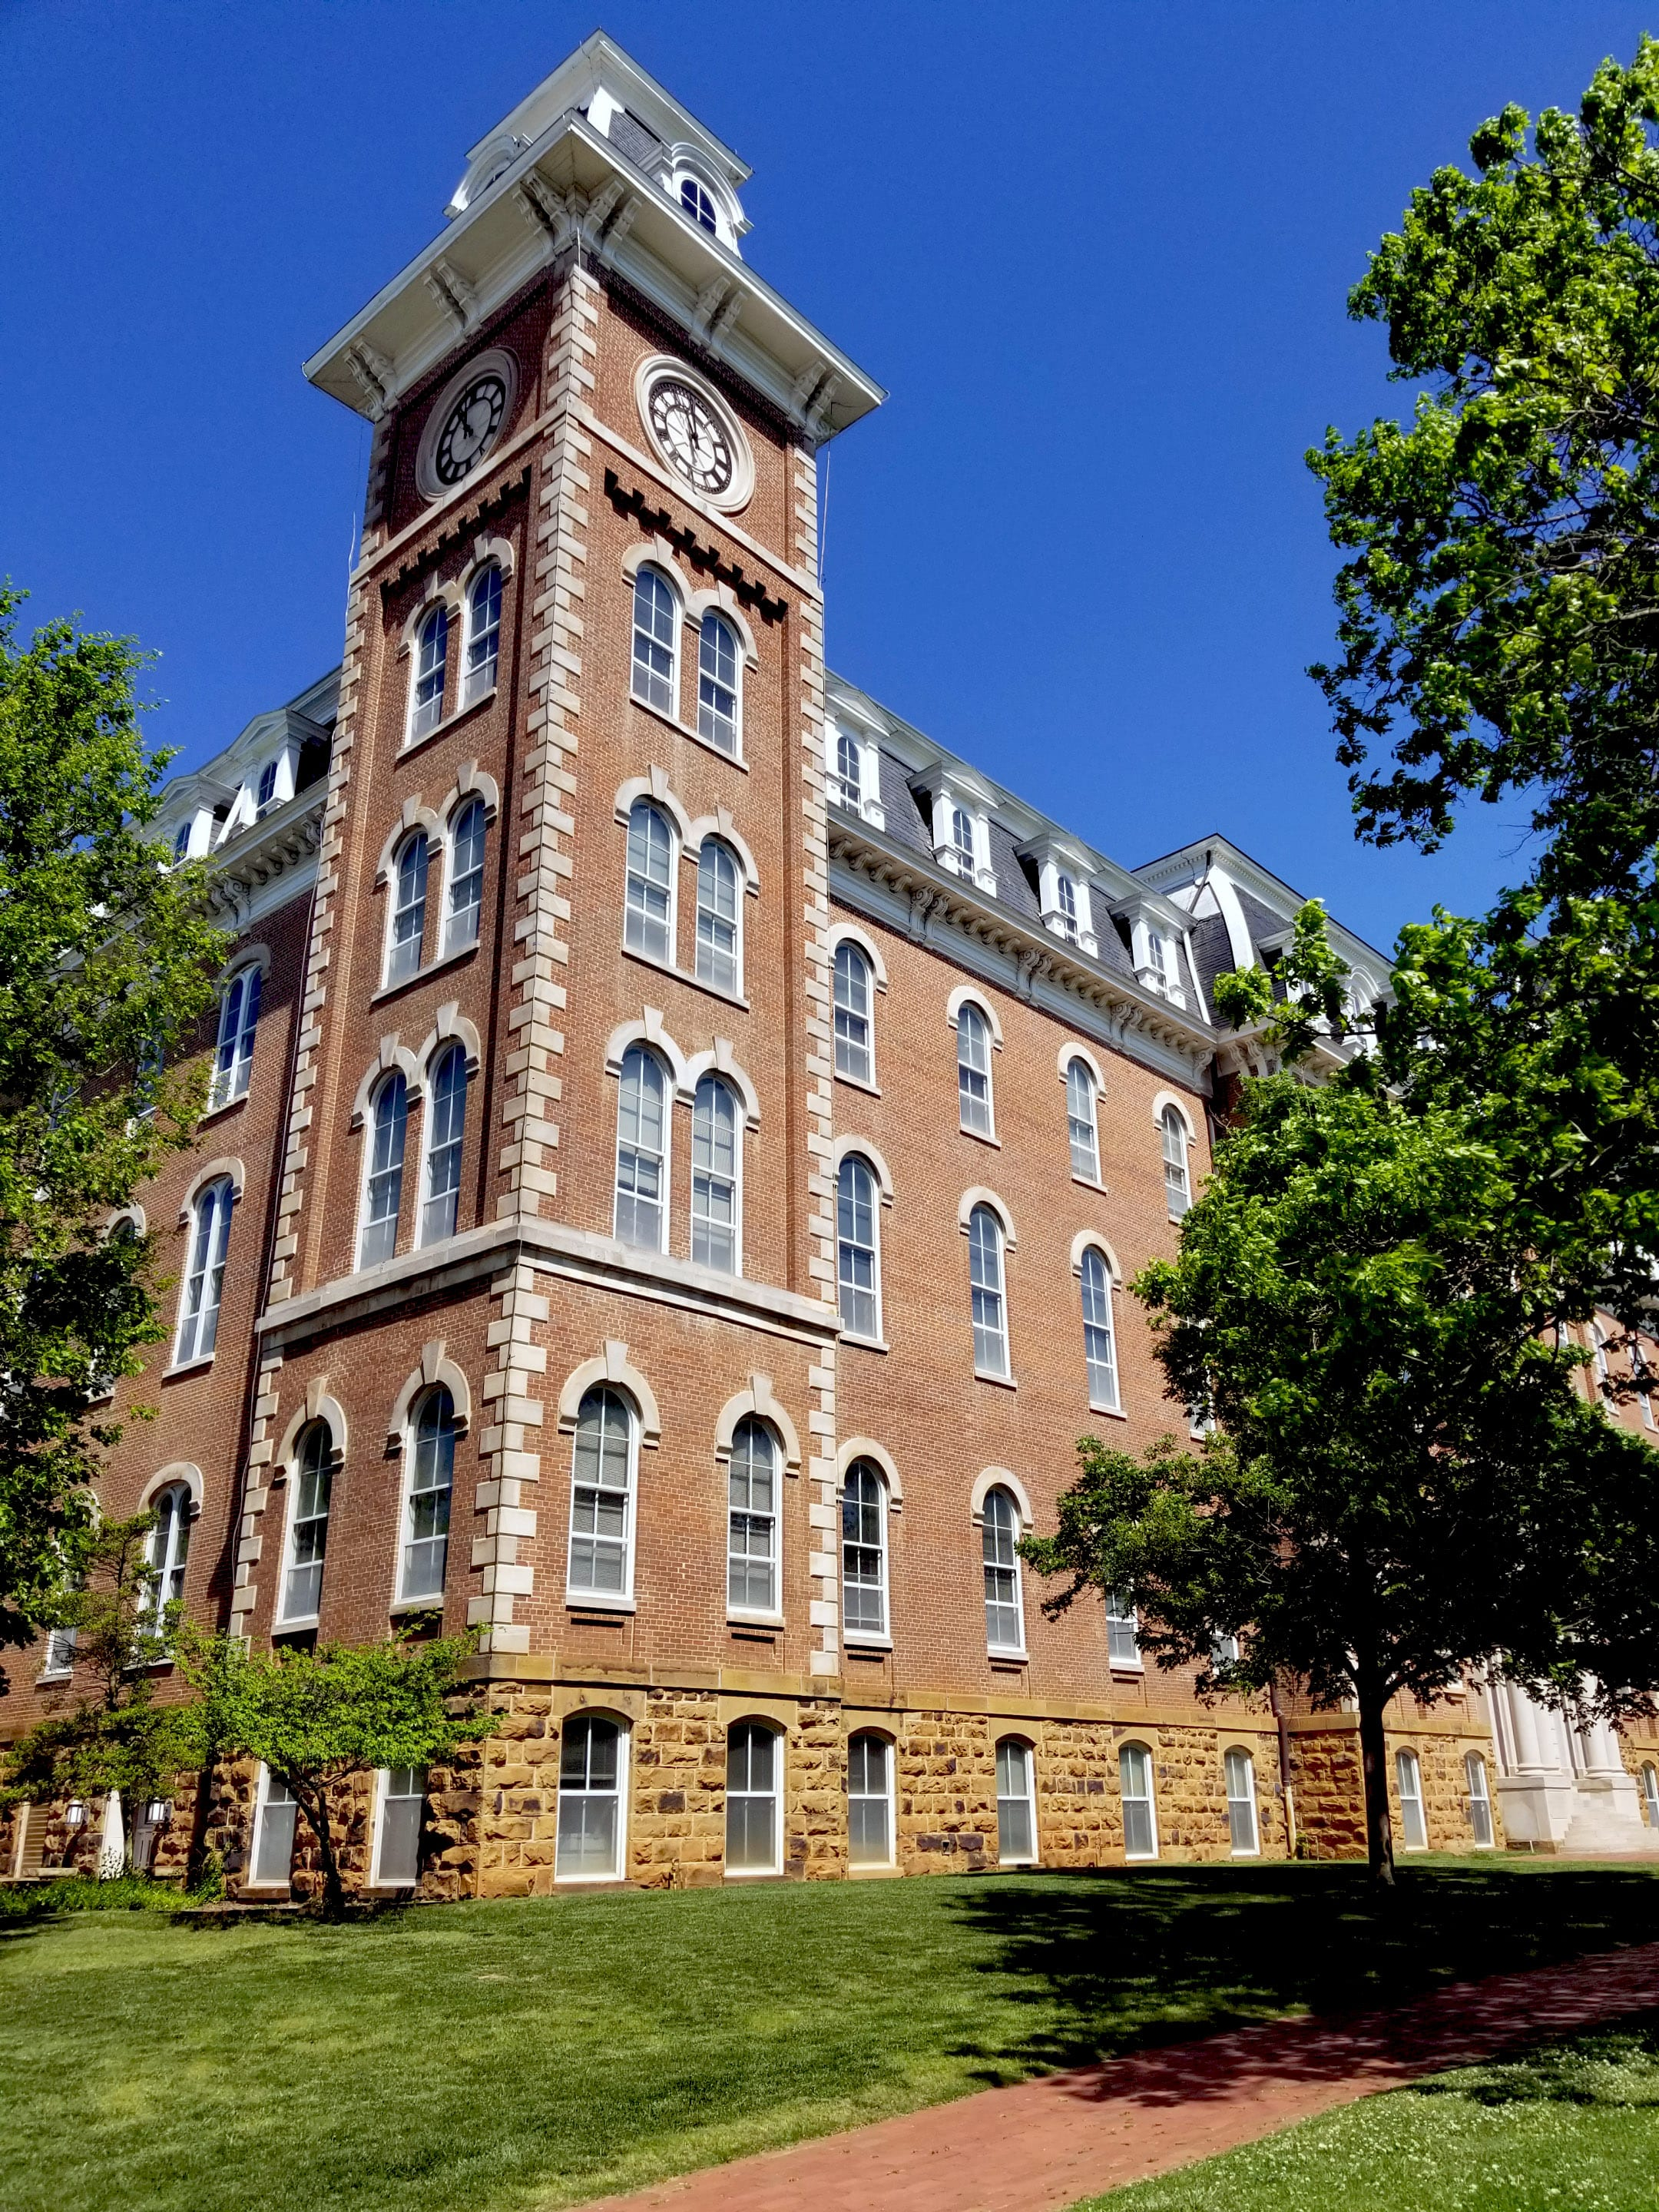 The South tower of Old Main